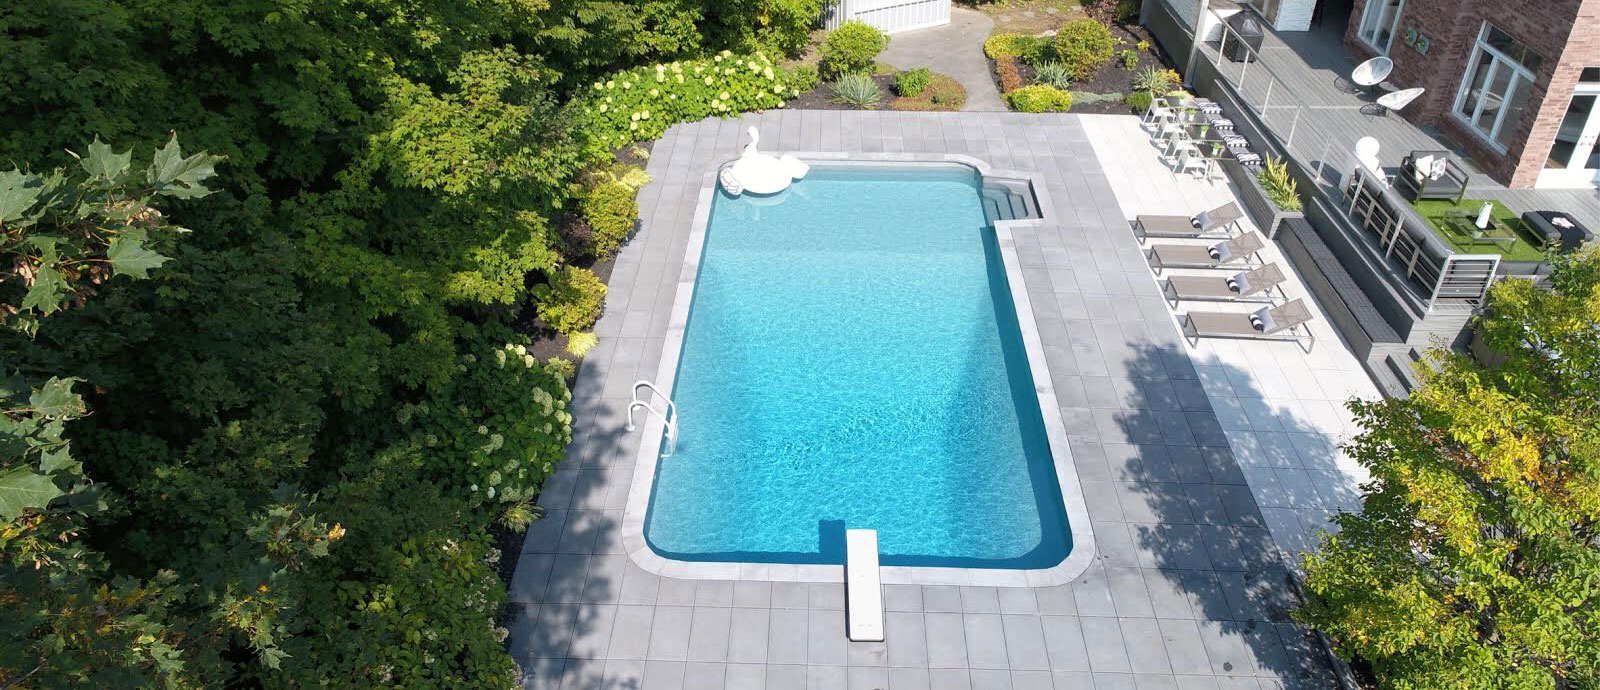 Does your pool need a makeover?